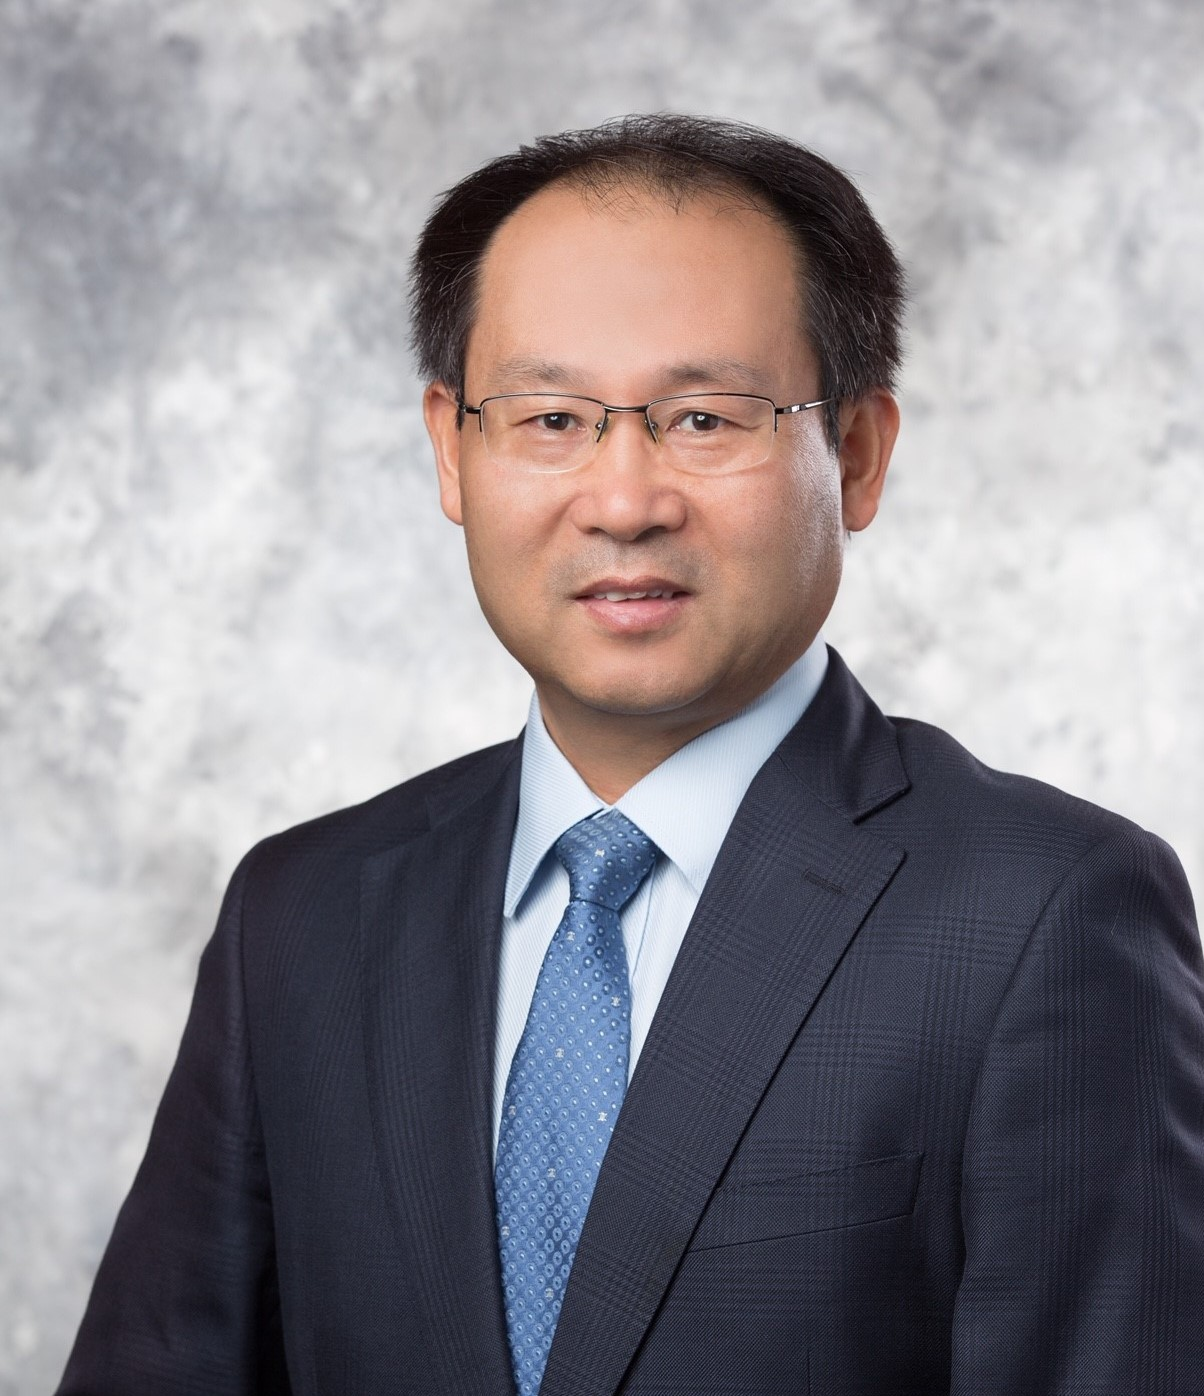 Prof Zuowei Xie elected as Member of ASHK 2019